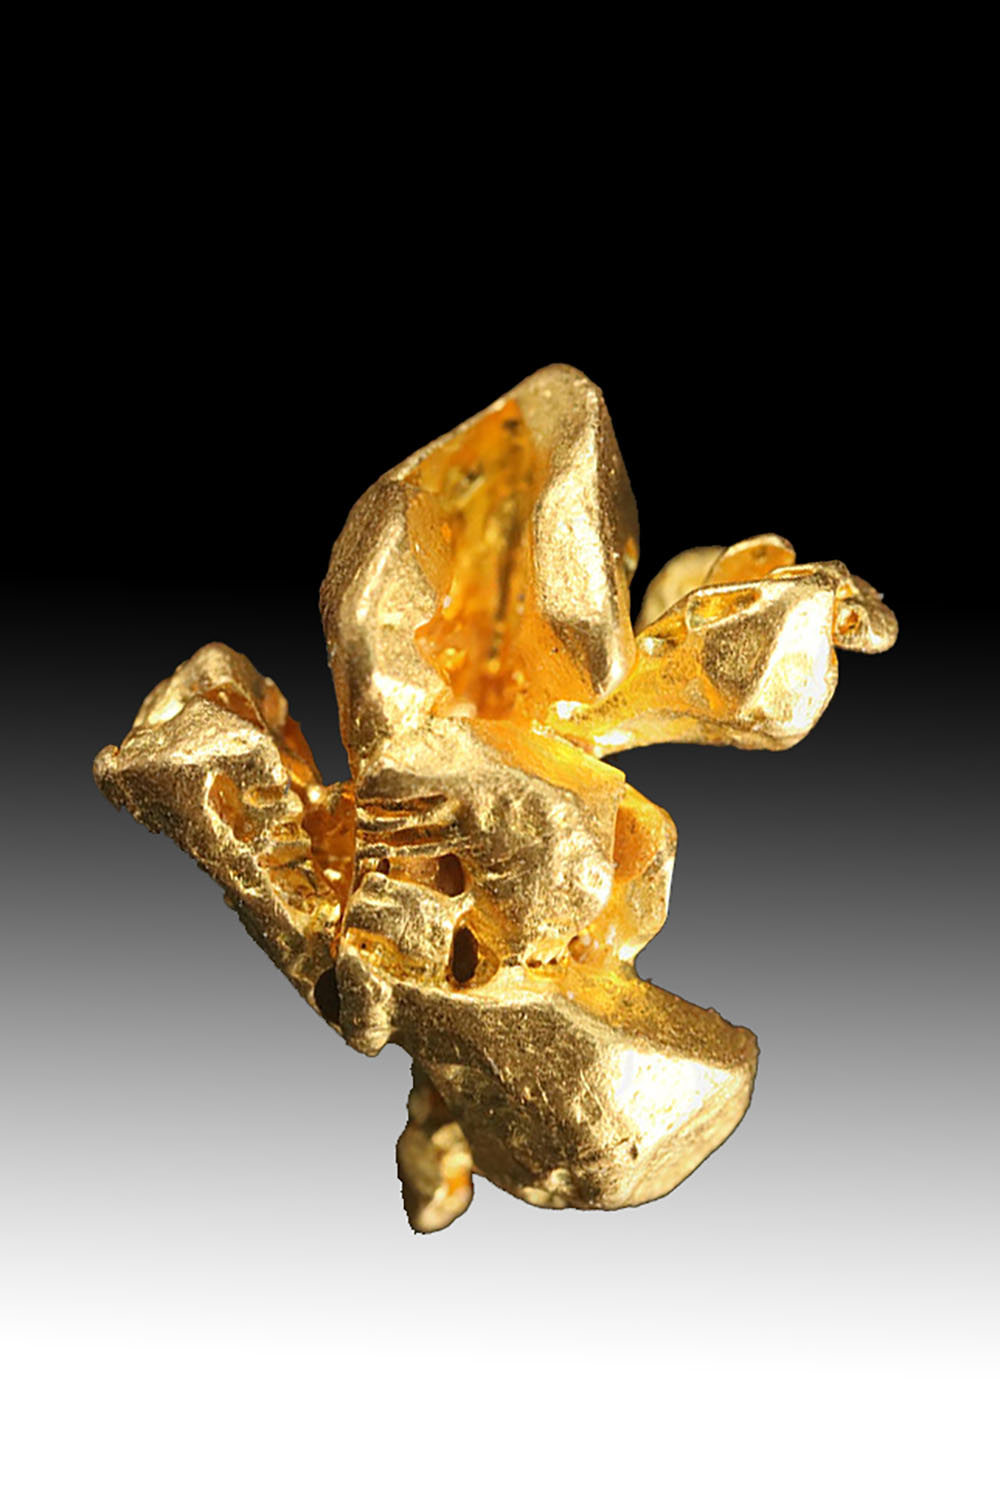 Gold Crystal From Venezuela - Outstanding Form